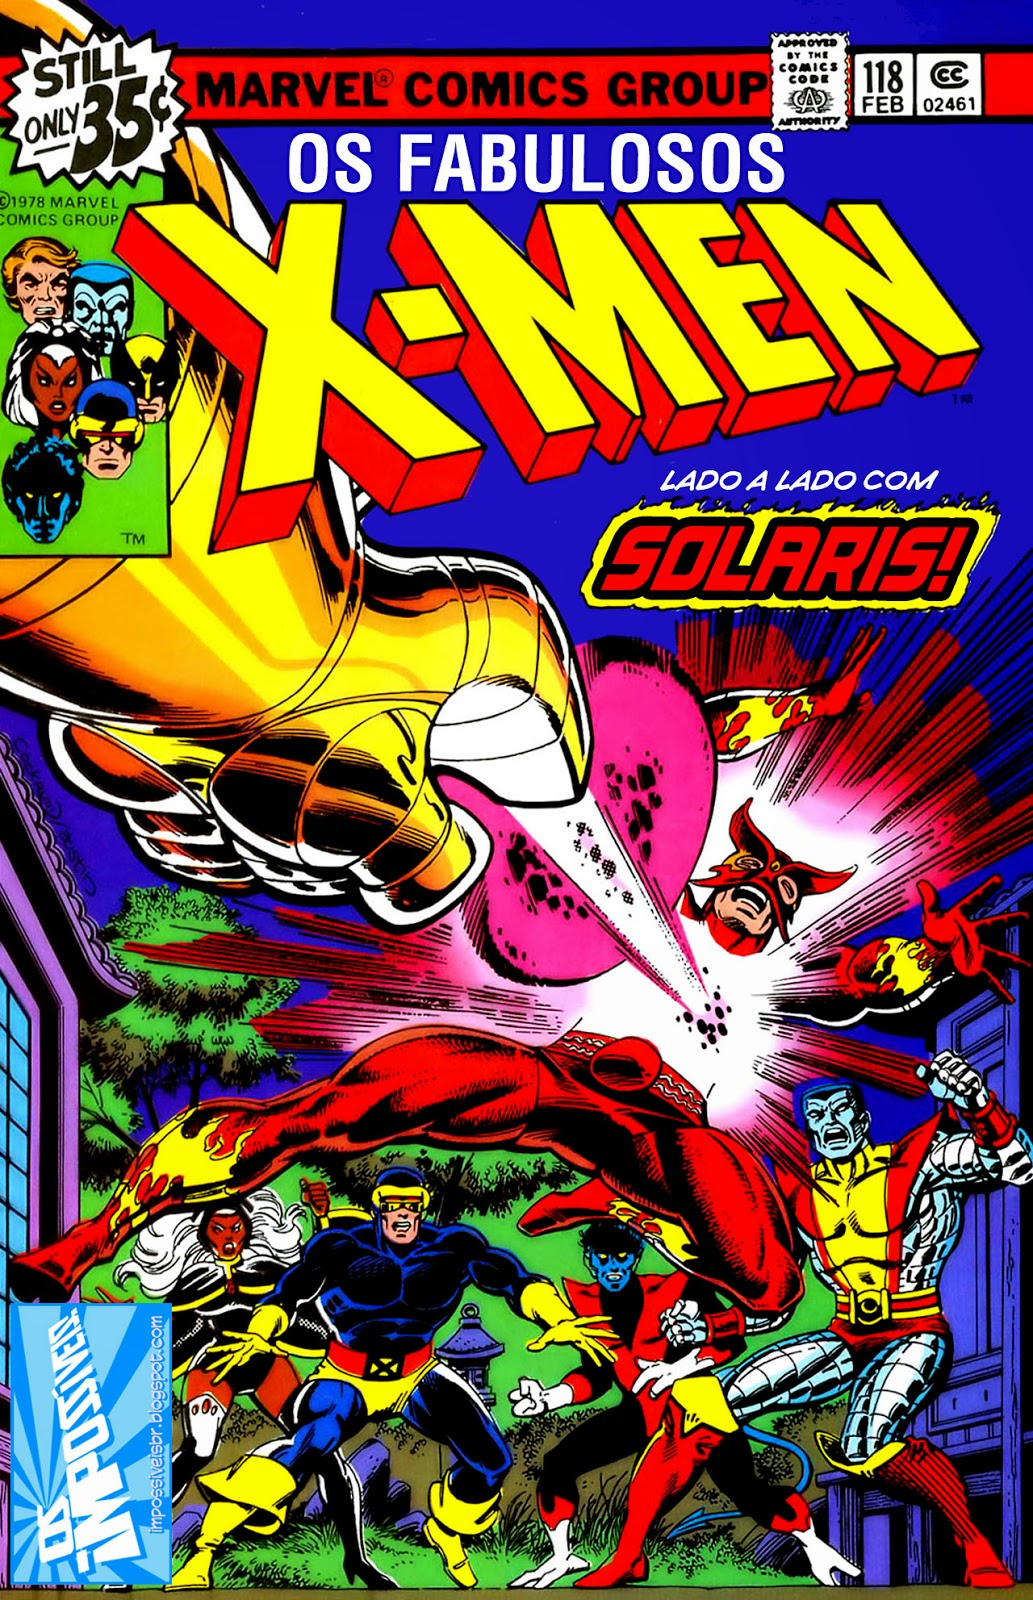 http://www.mediafire.com/download/hm08ojqo558yw28/Os.Fabulosos.X-Men.(X-Men.V1).118.HQBR.28OUT13.Os.Impossiveis.cbr